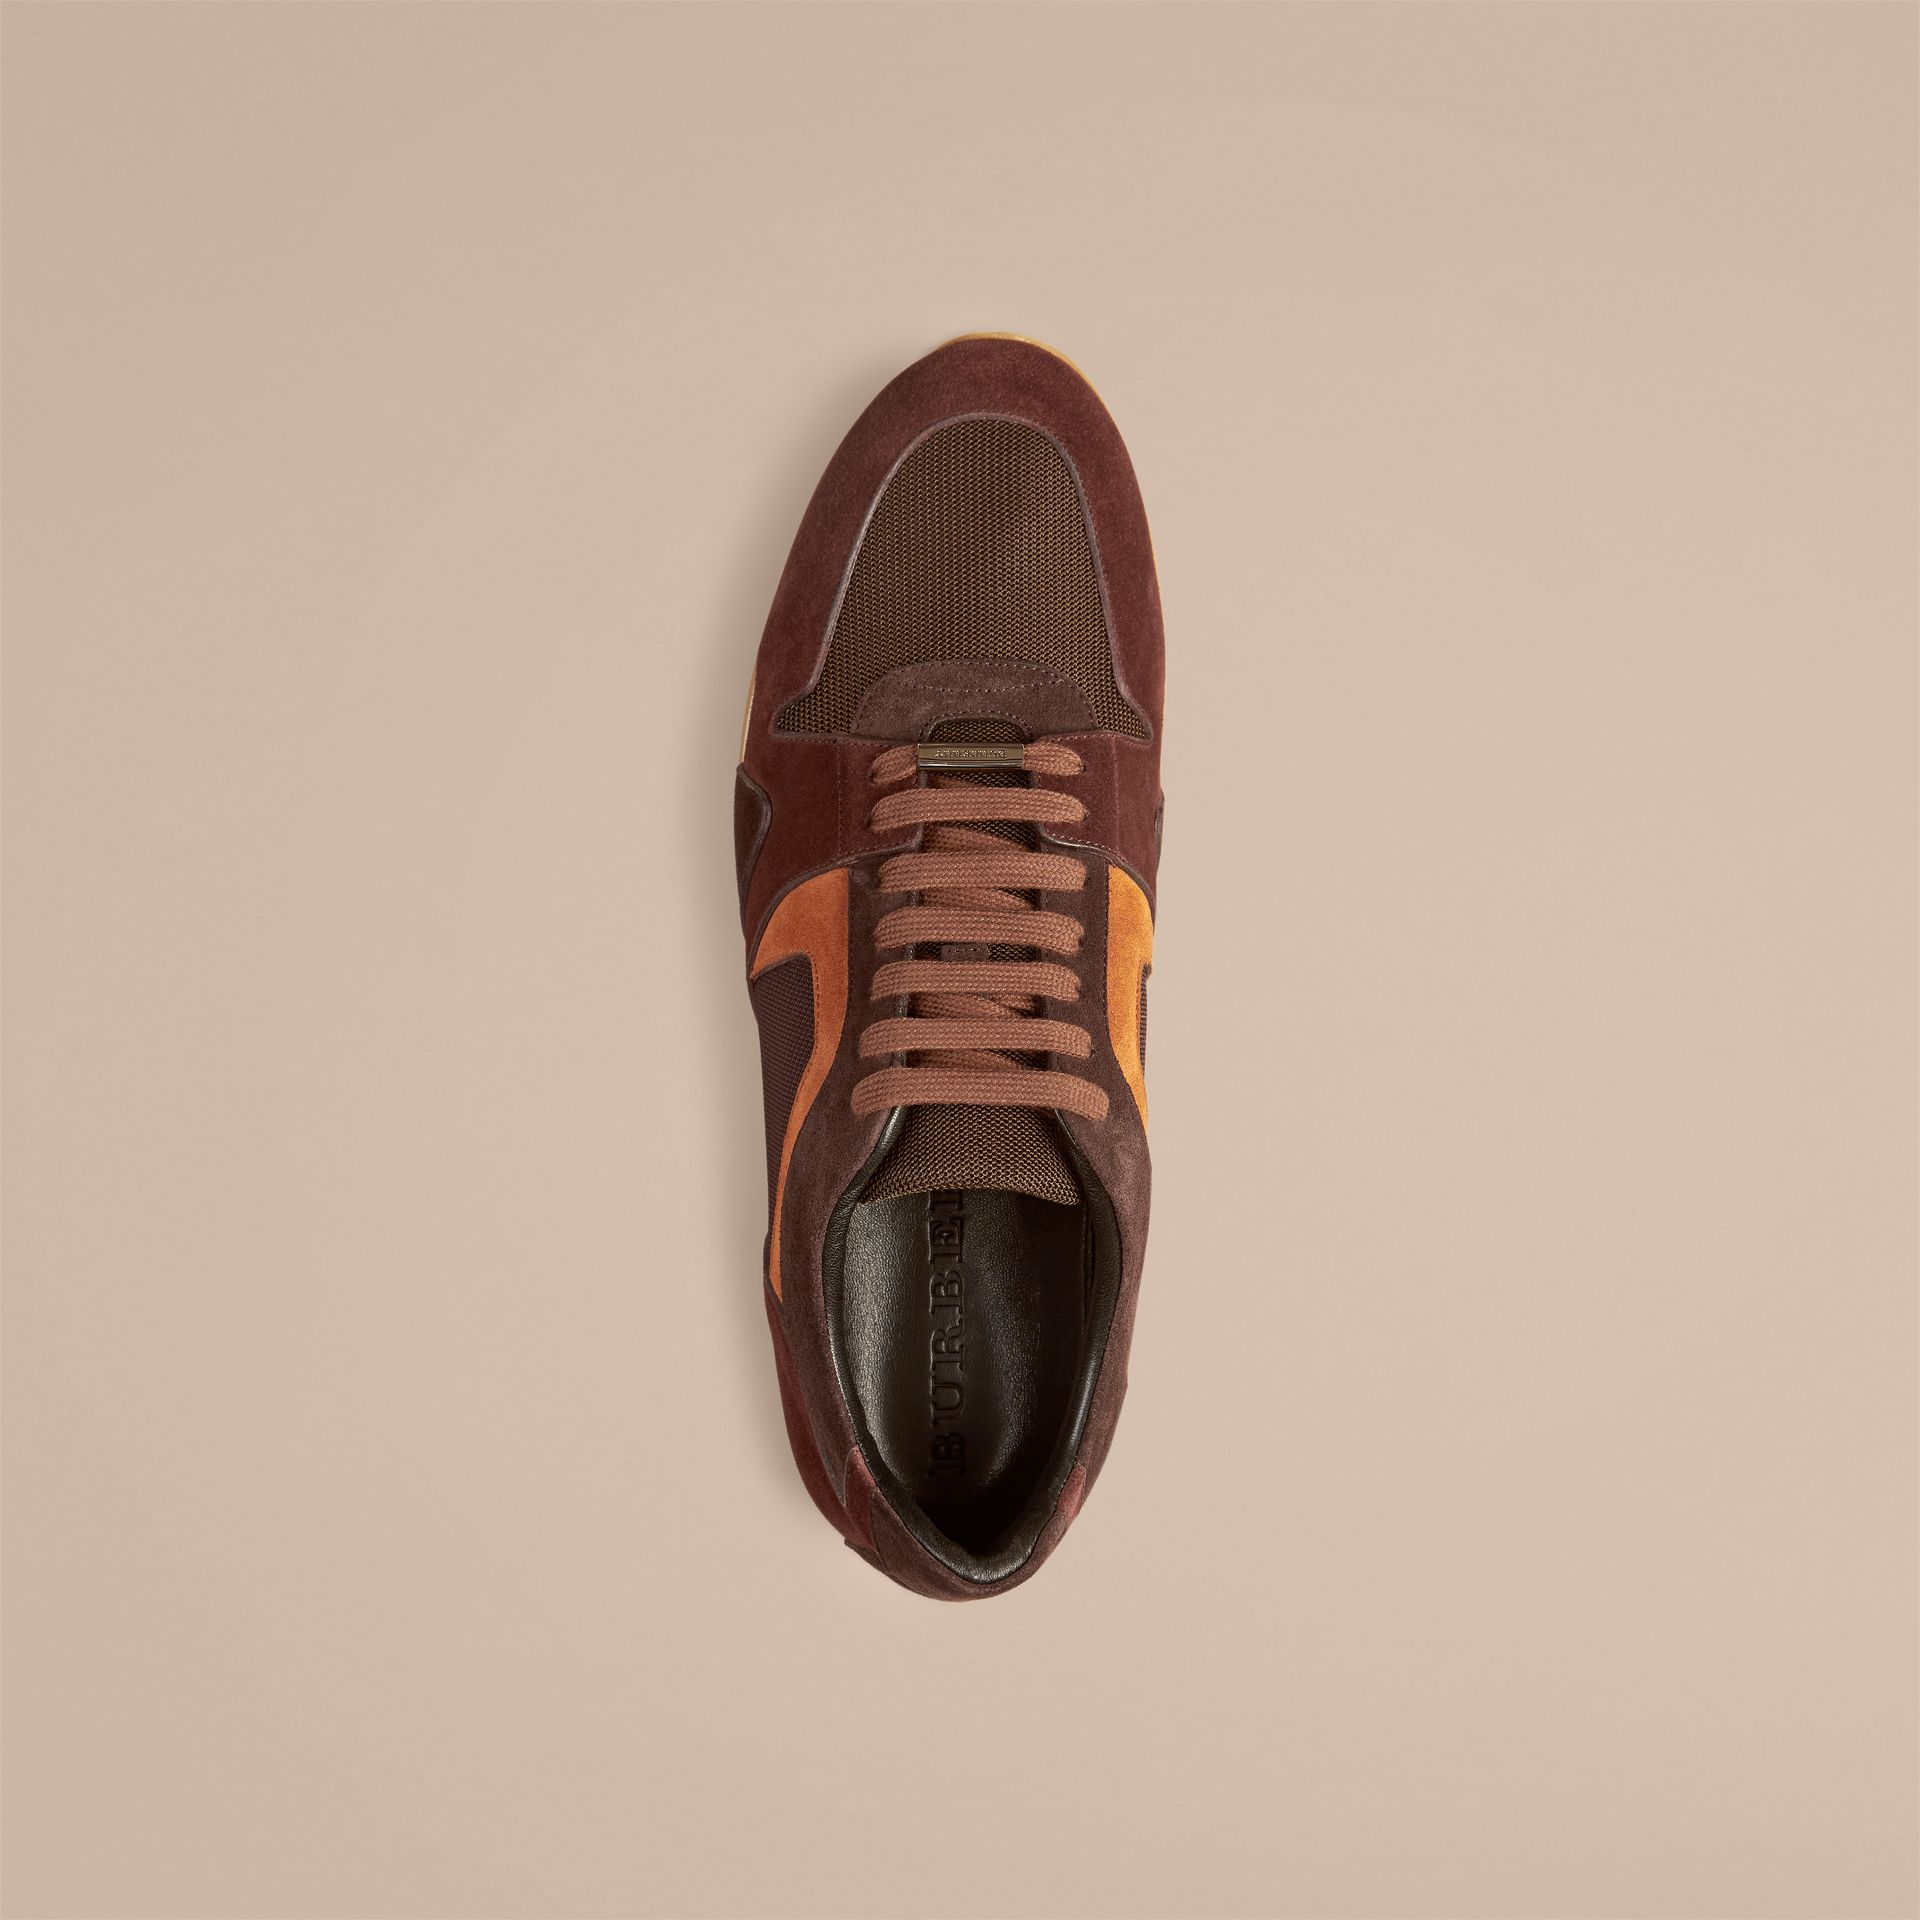 Russet brown The Field Sneaker in Colour Block Suede and Mesh Russet Brown - gallery image 2